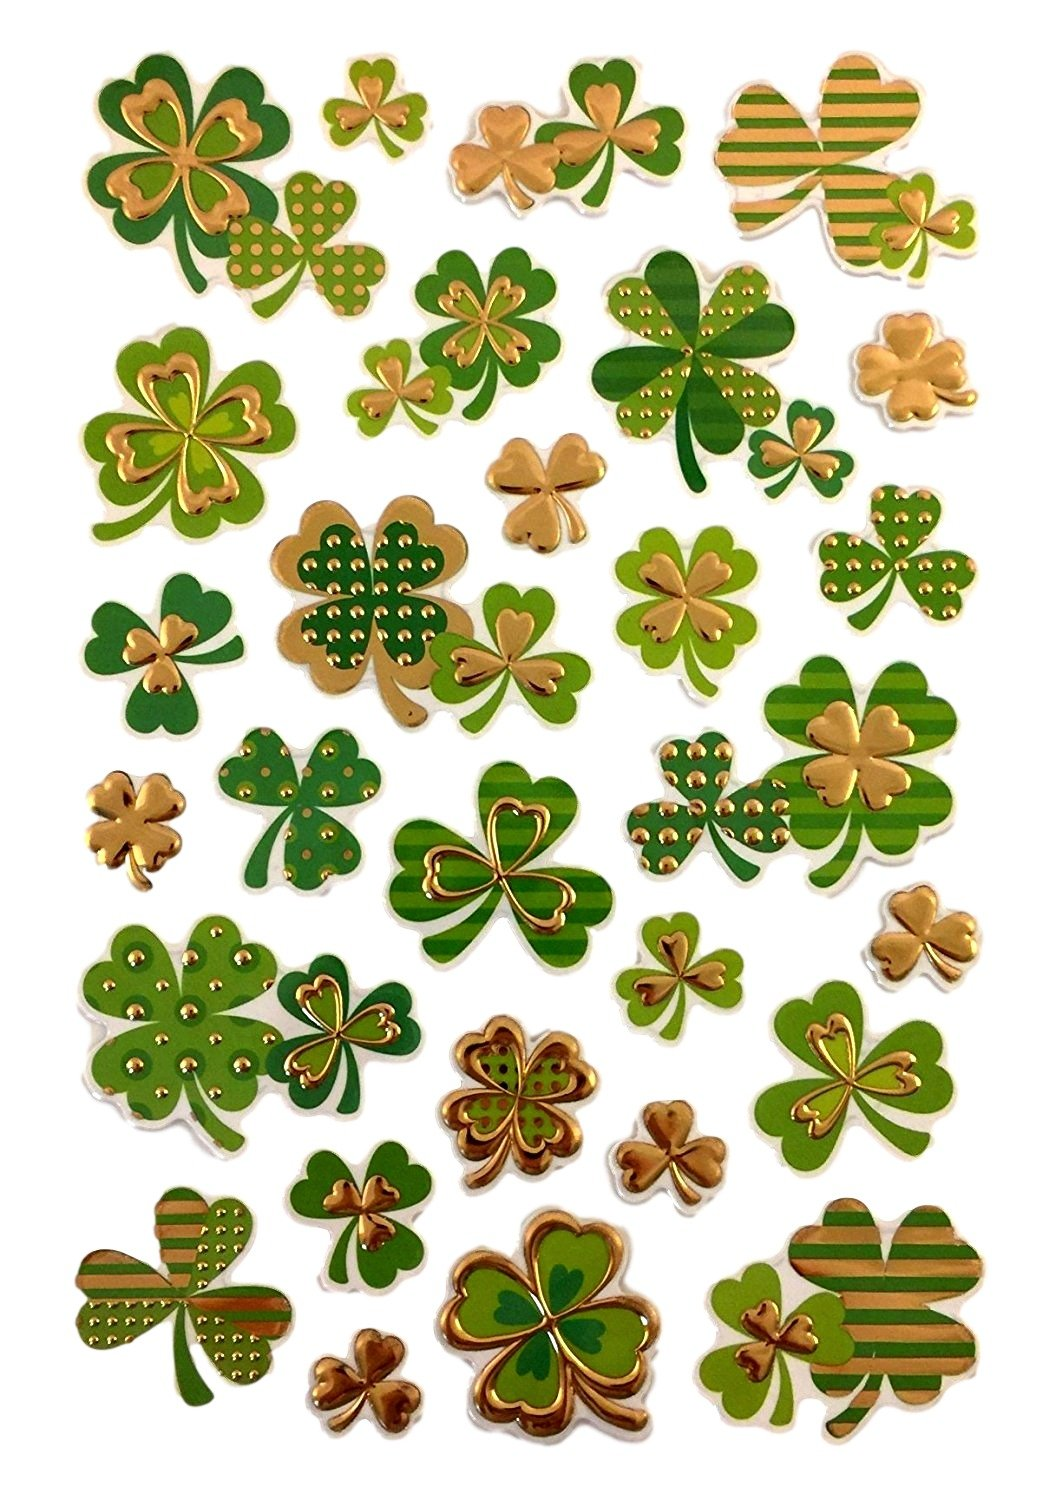 Sheet of Irish St Patricks Day Stickers - Embossed and Gold Foiled in Whimsical Shamrock / Clover Designs